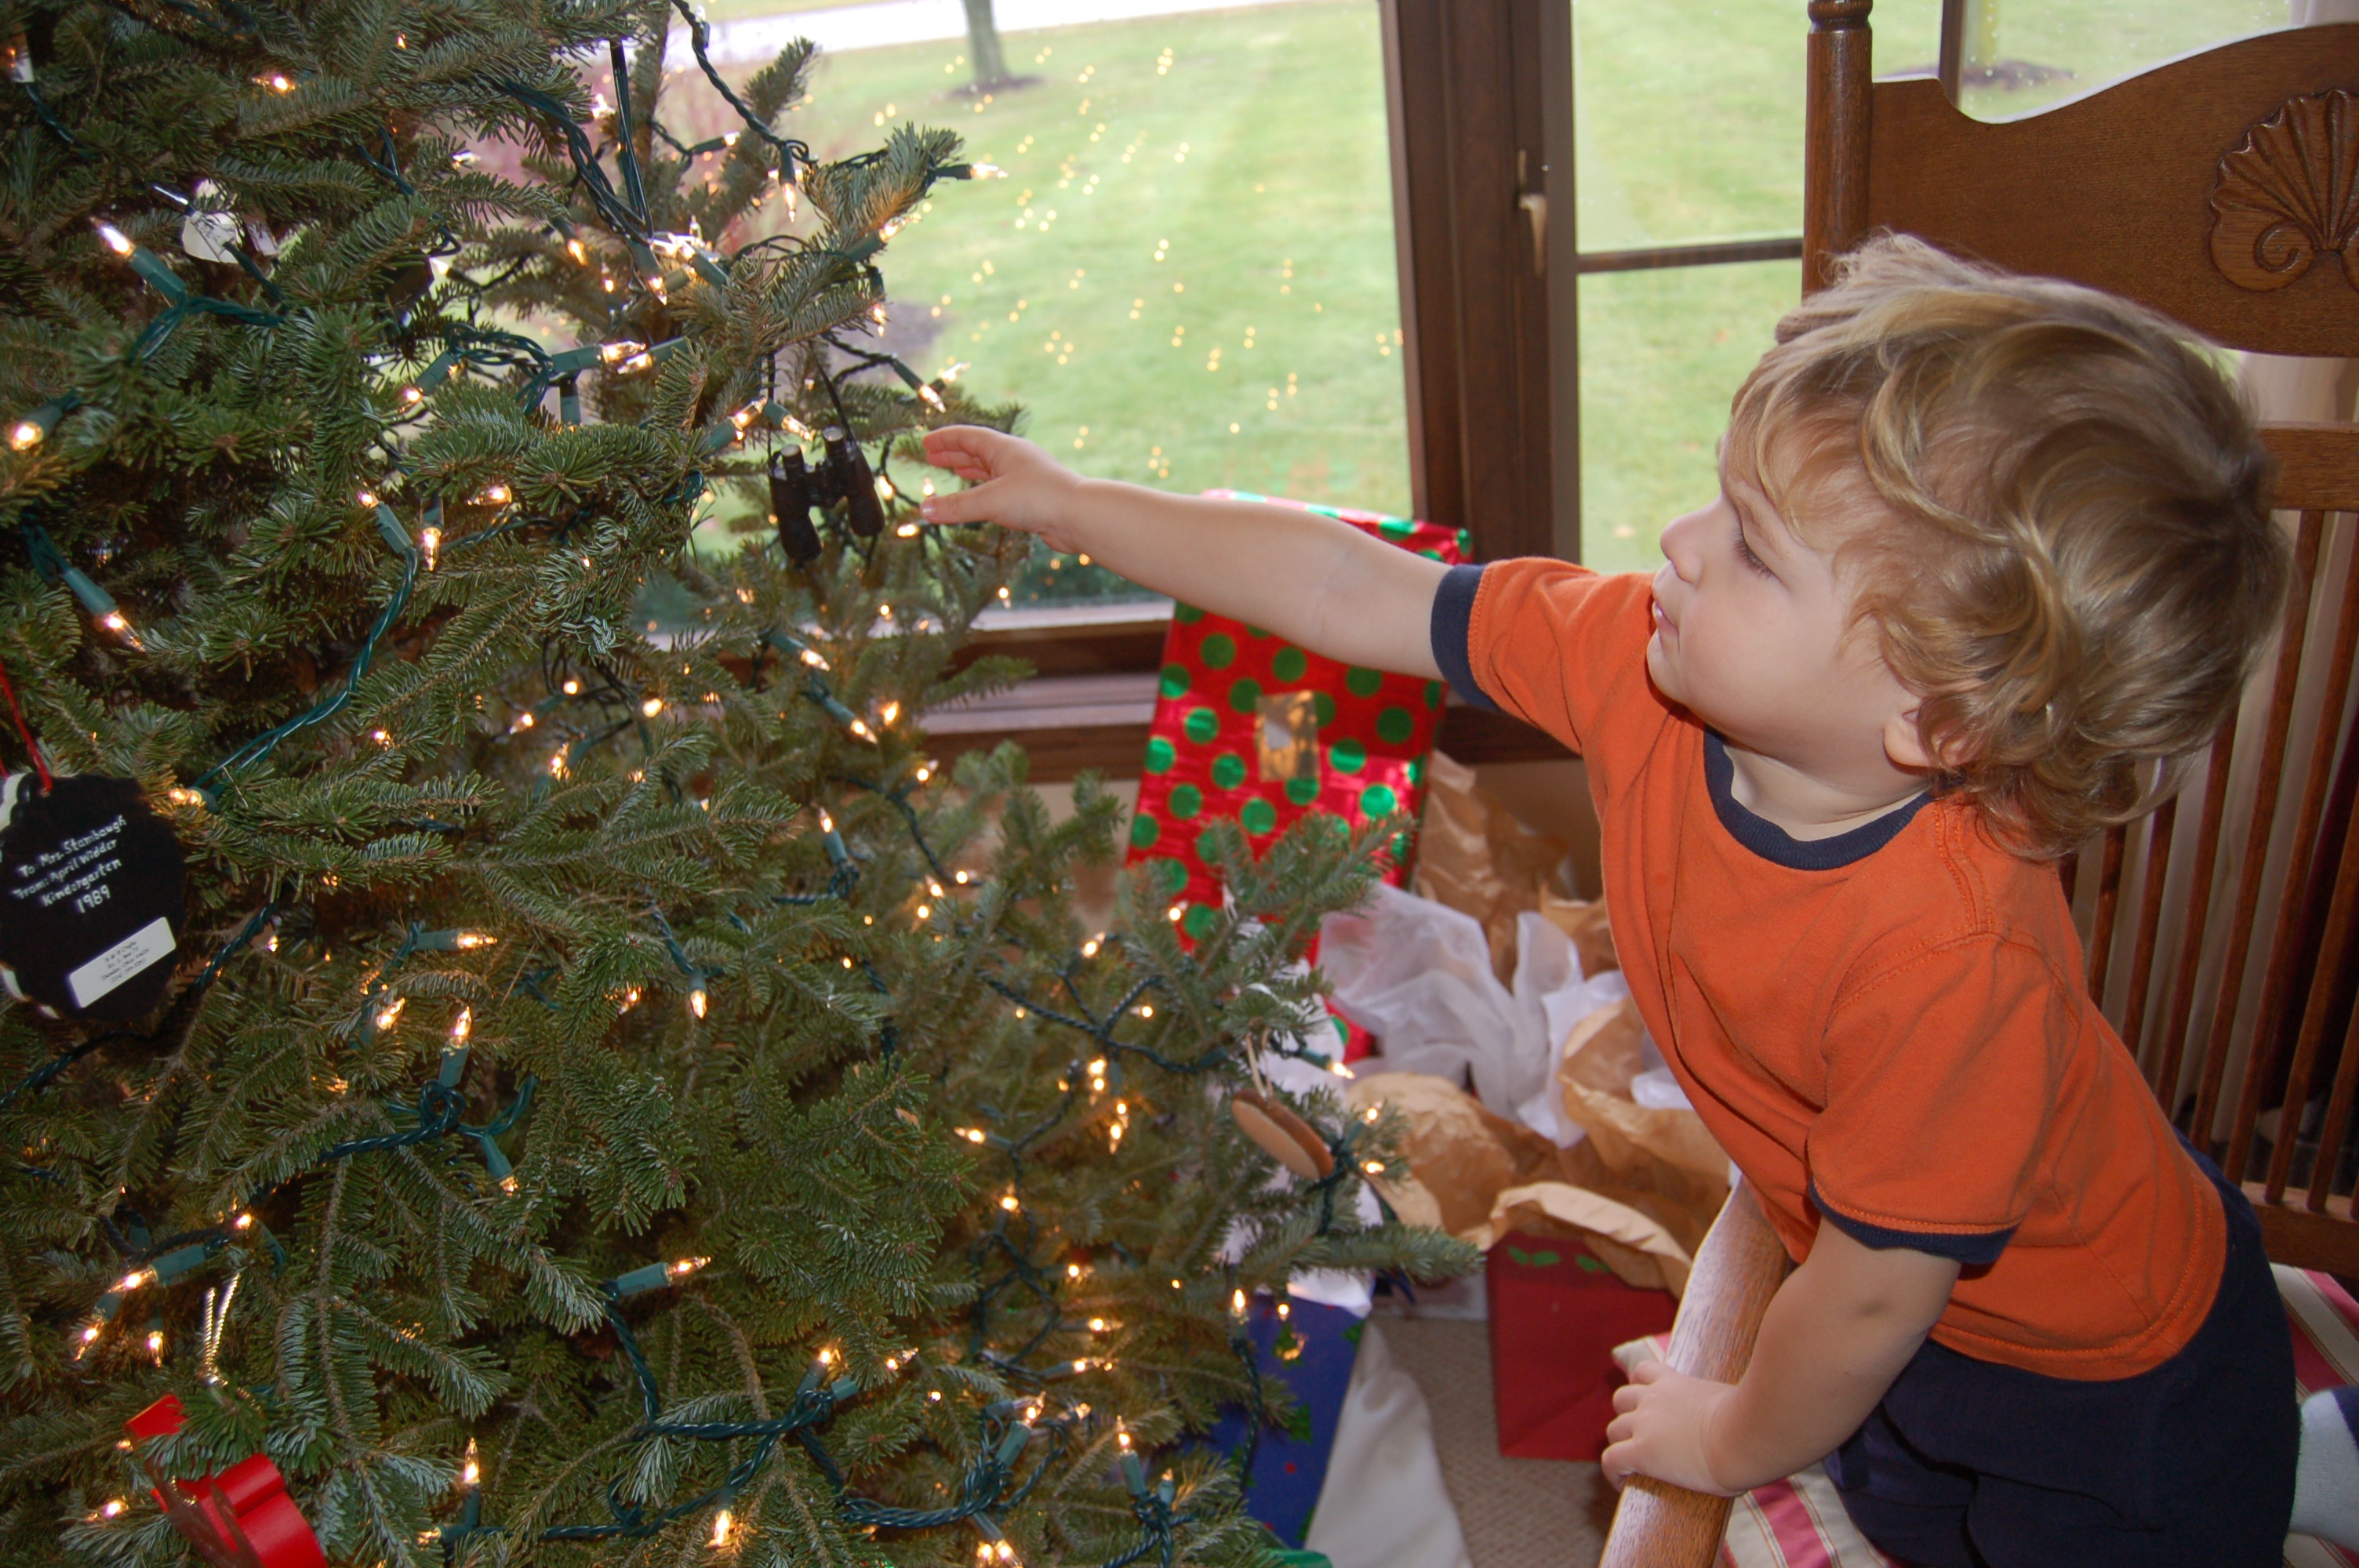 Decorating the tree by Bruce Stambaugh